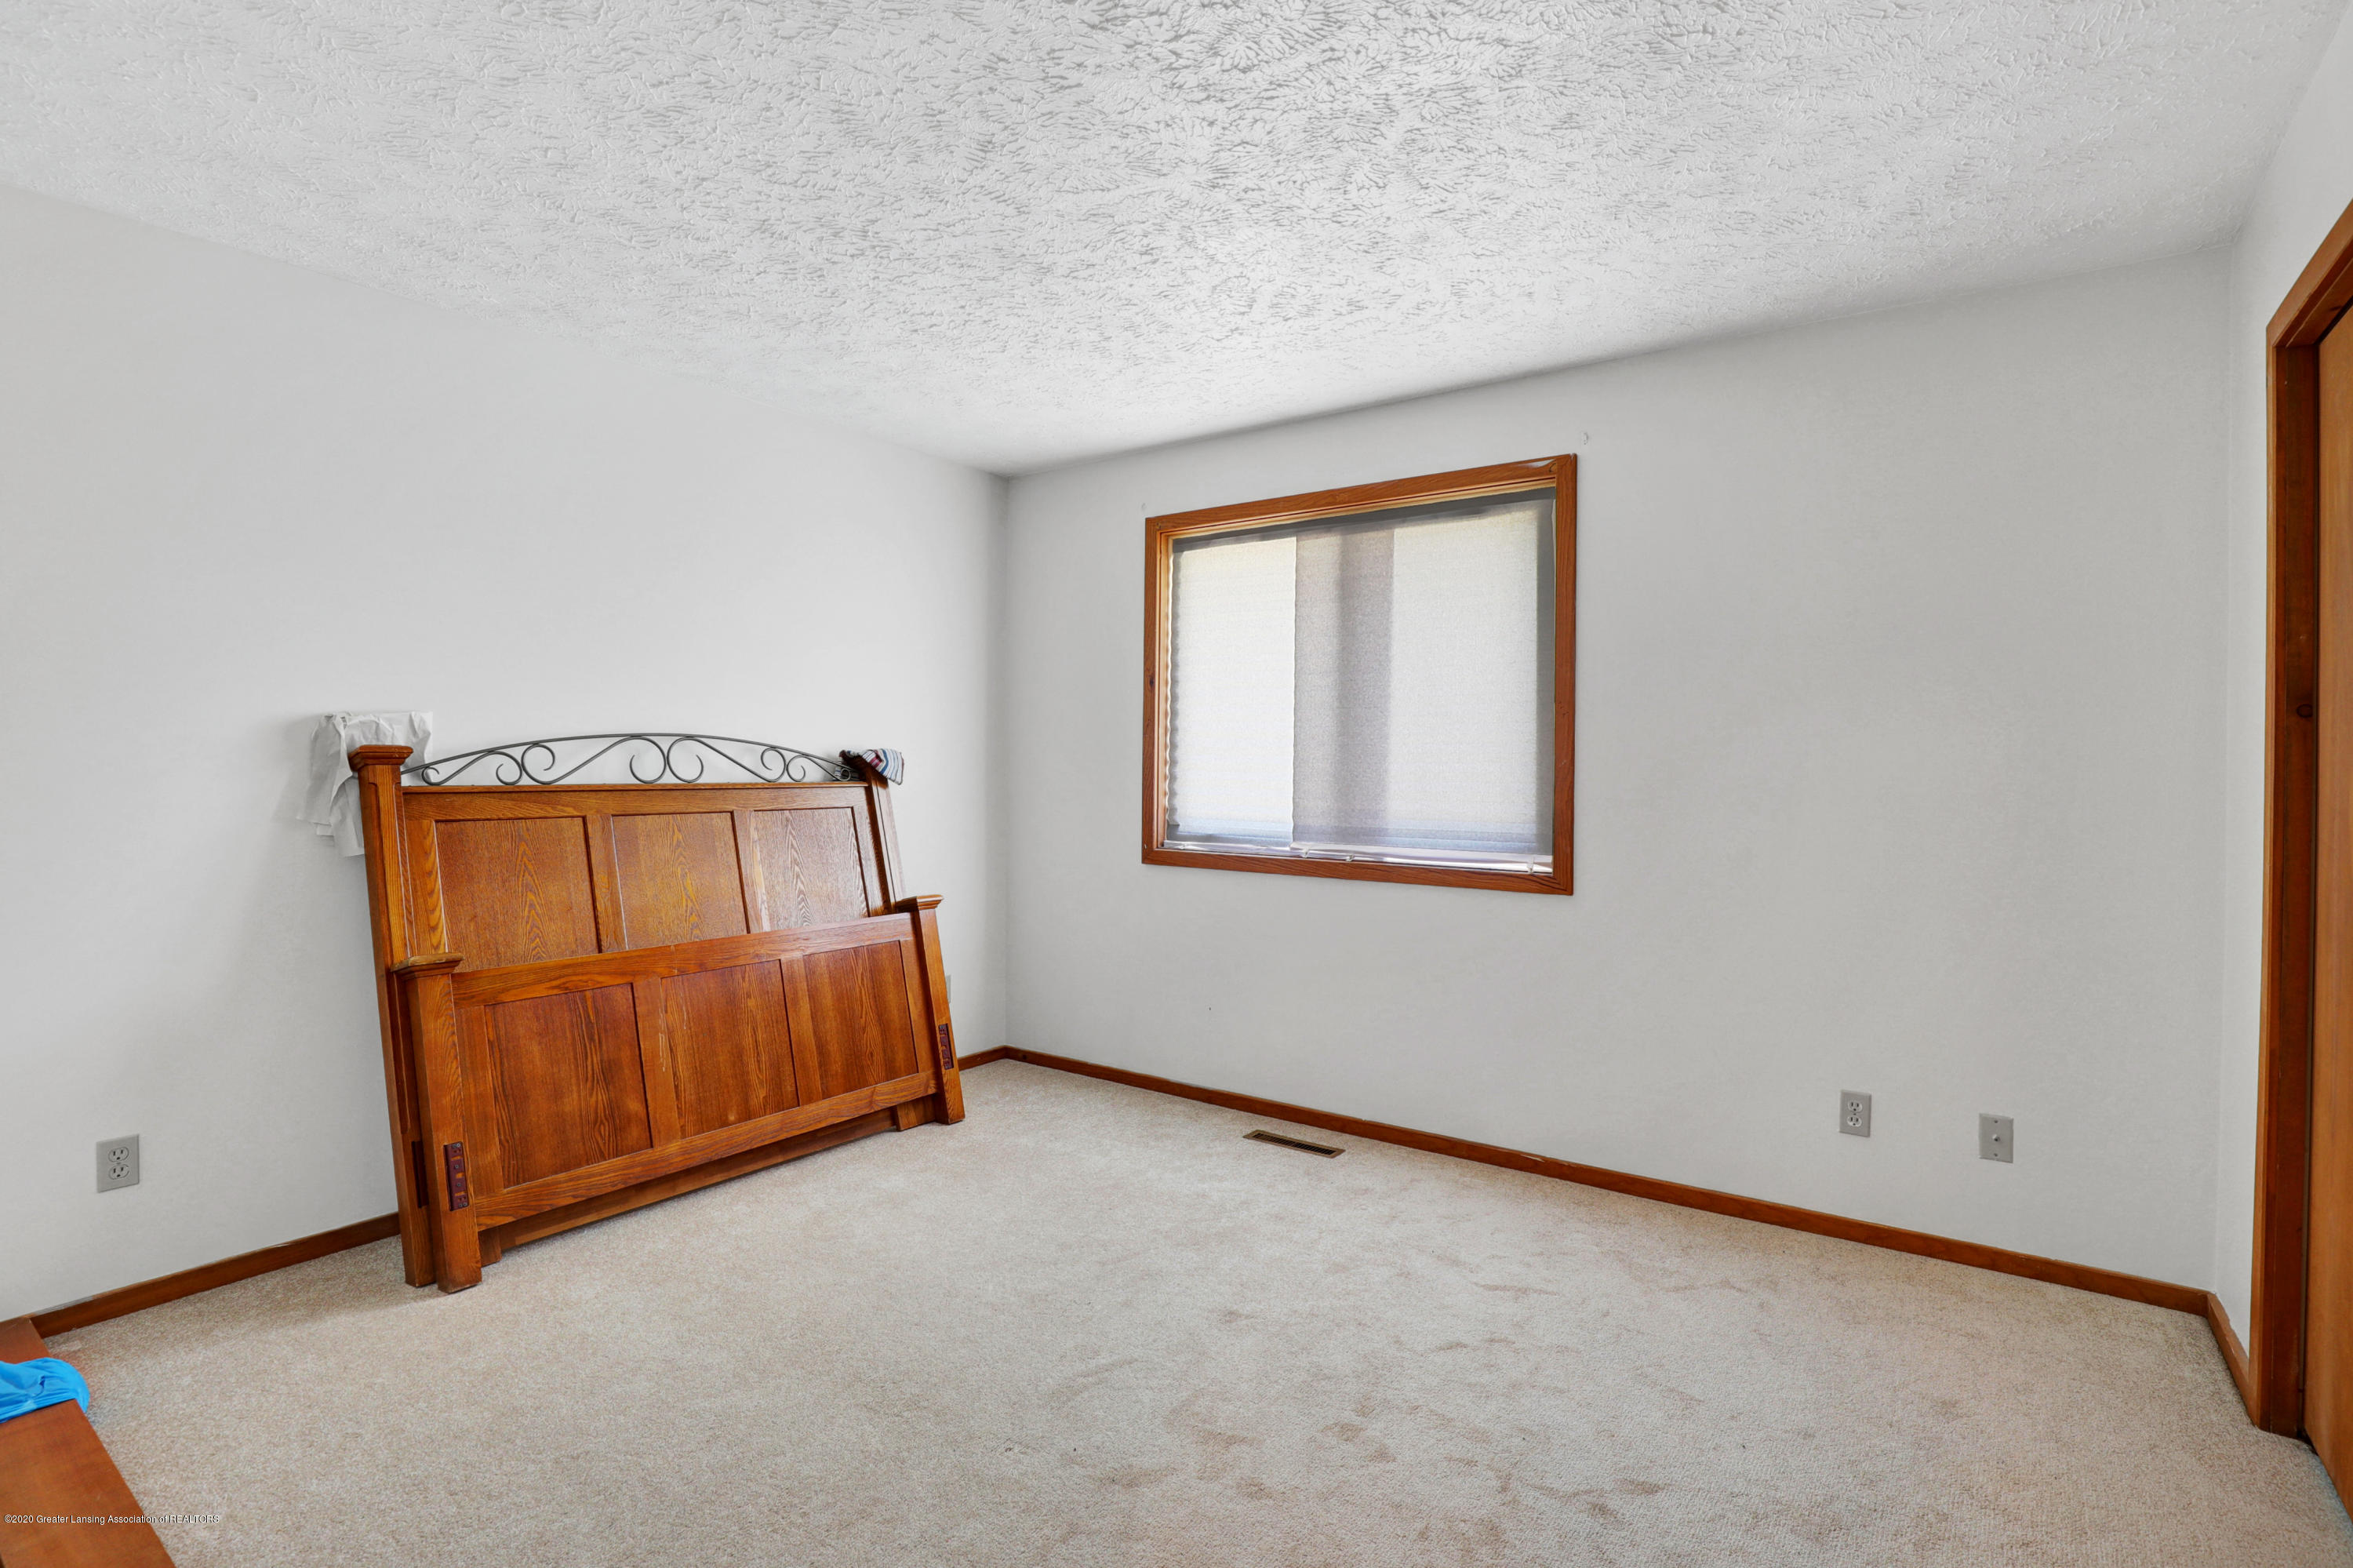 802 Randy Ln - Bedroom #2 - 20